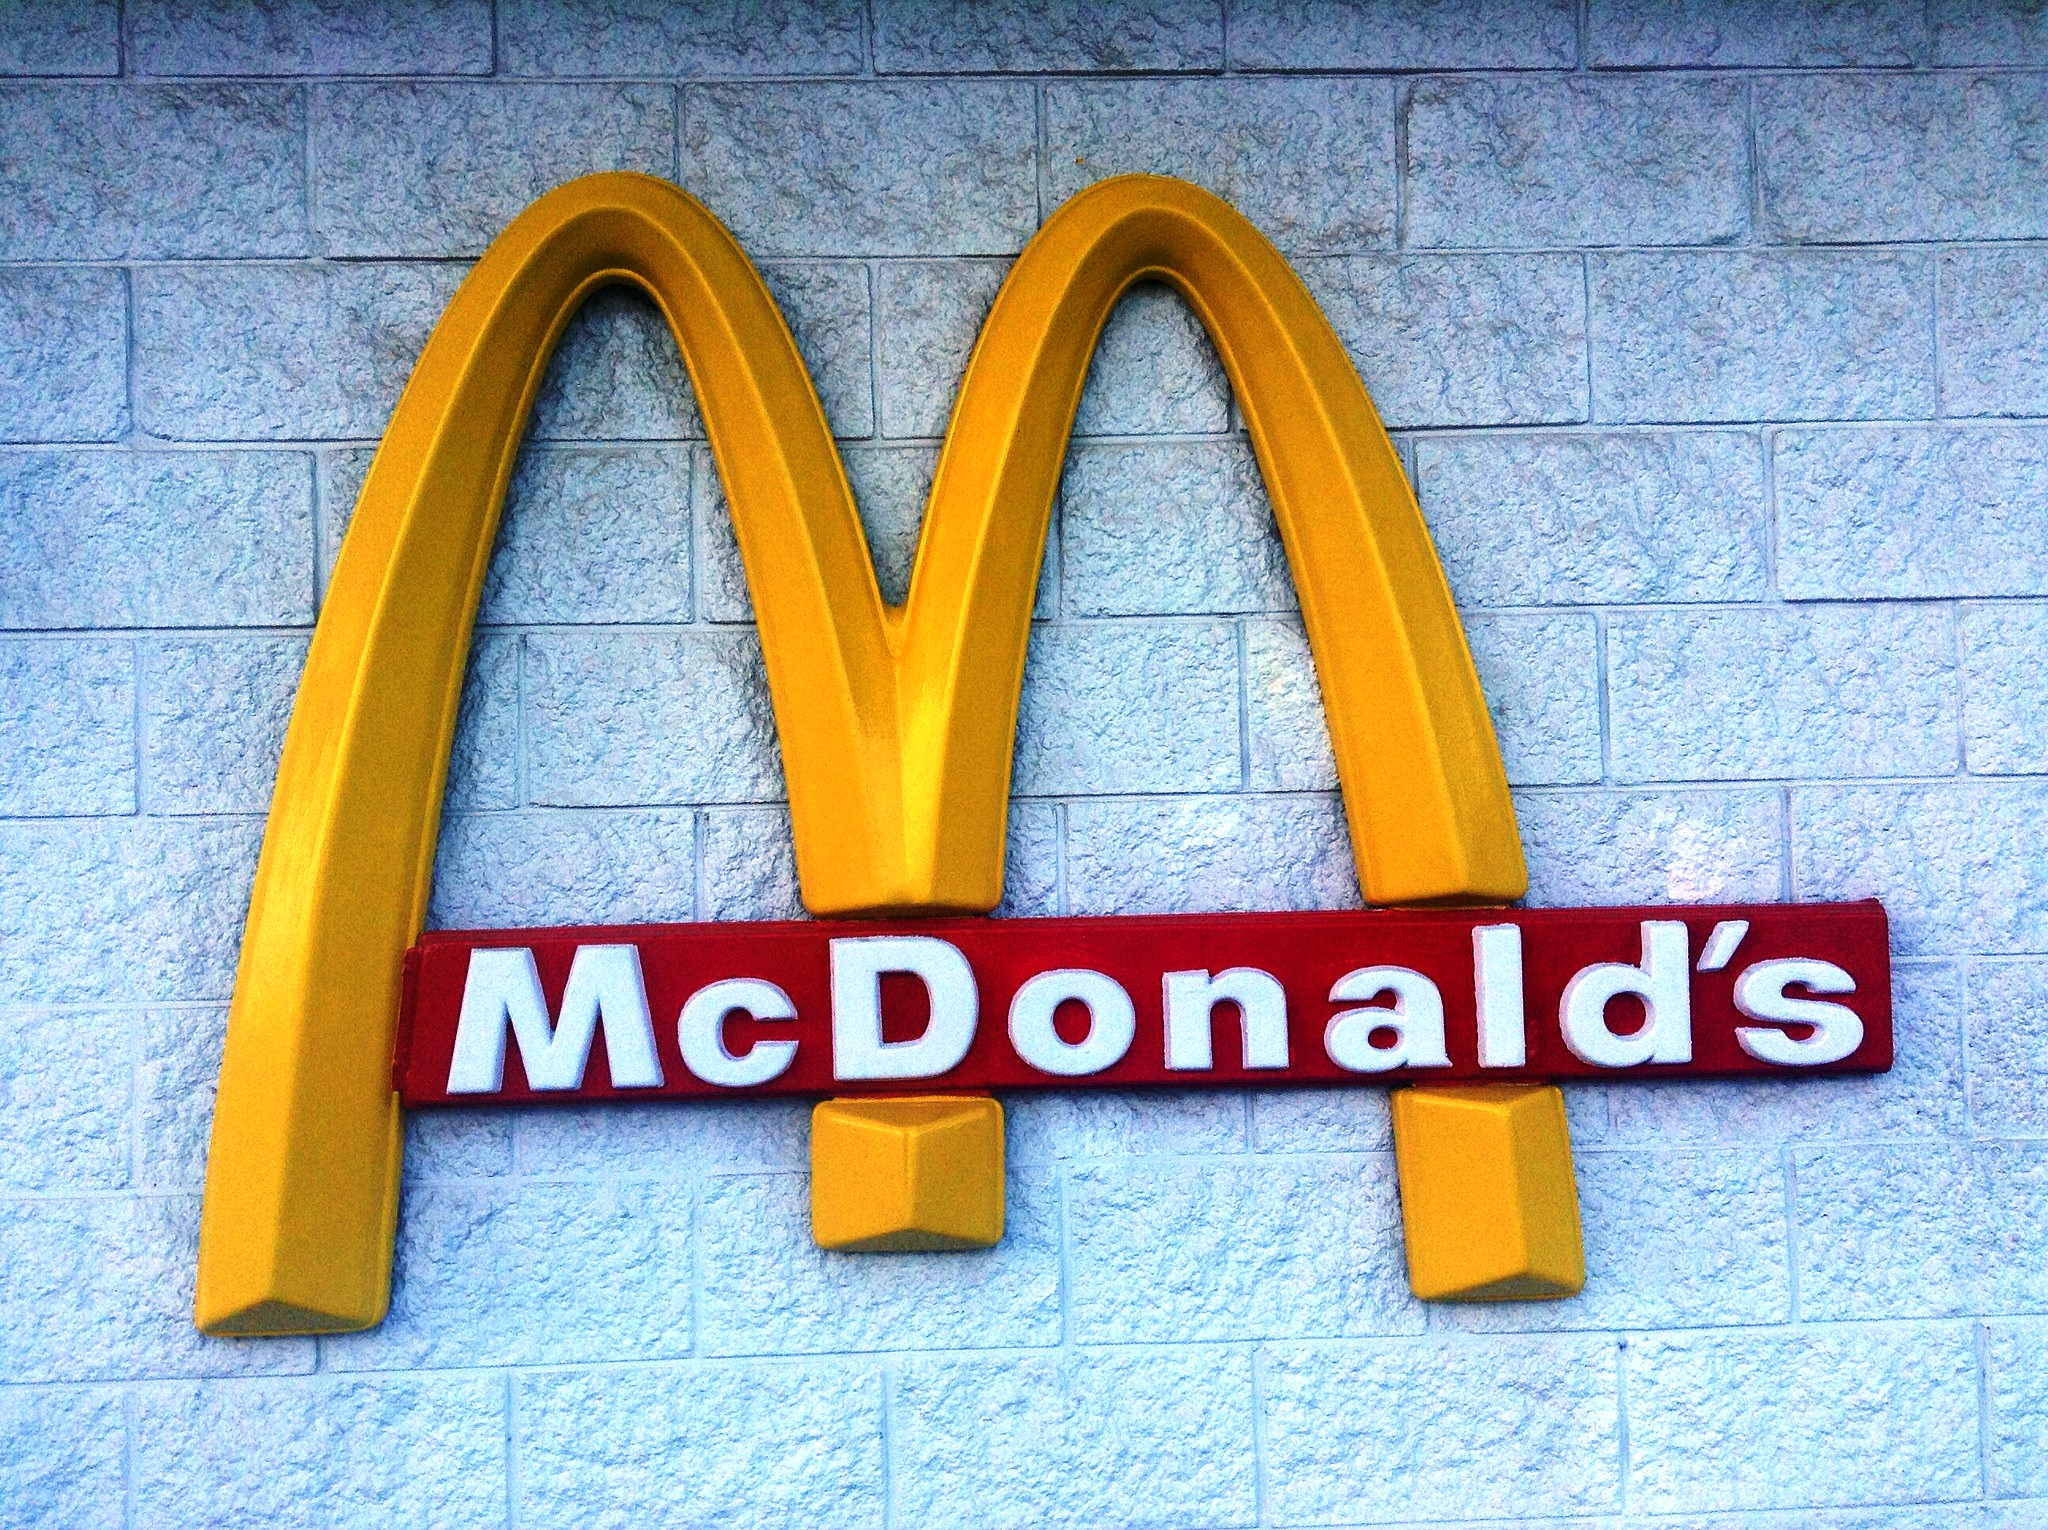 The McDonald's golden arches on the side of a building.